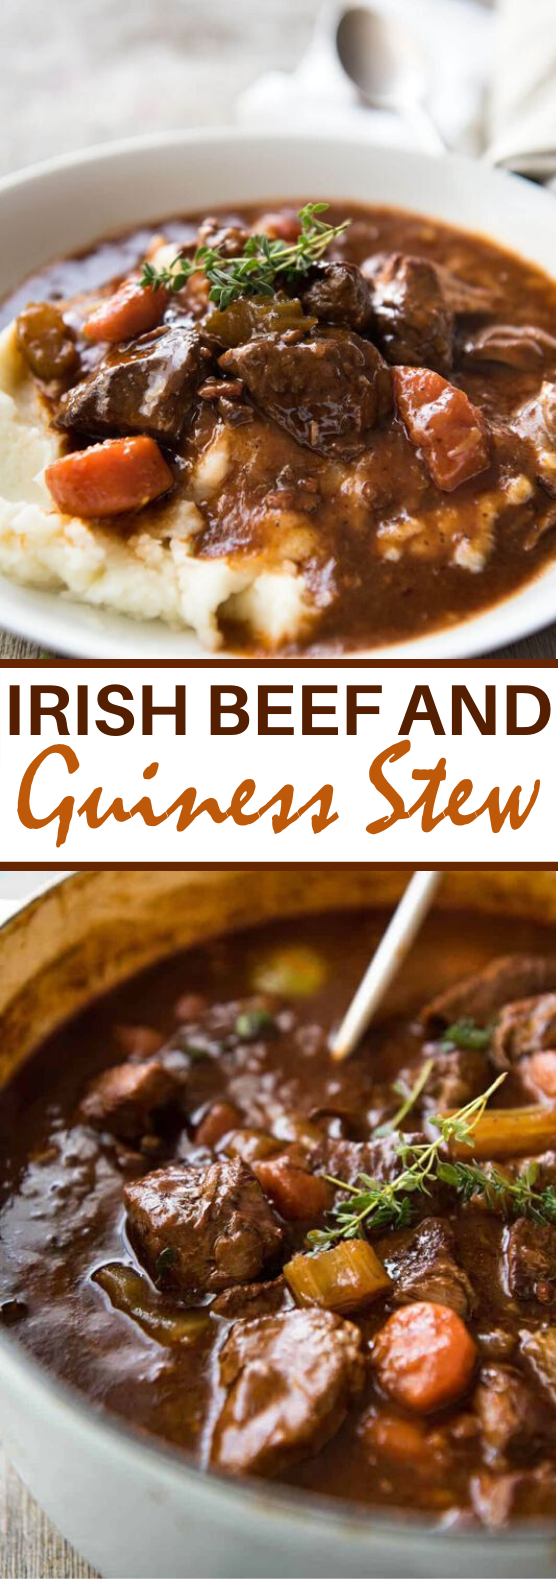 Irish Beef and Guinness Stew #dinner #beef #stew #comfortfood #soup